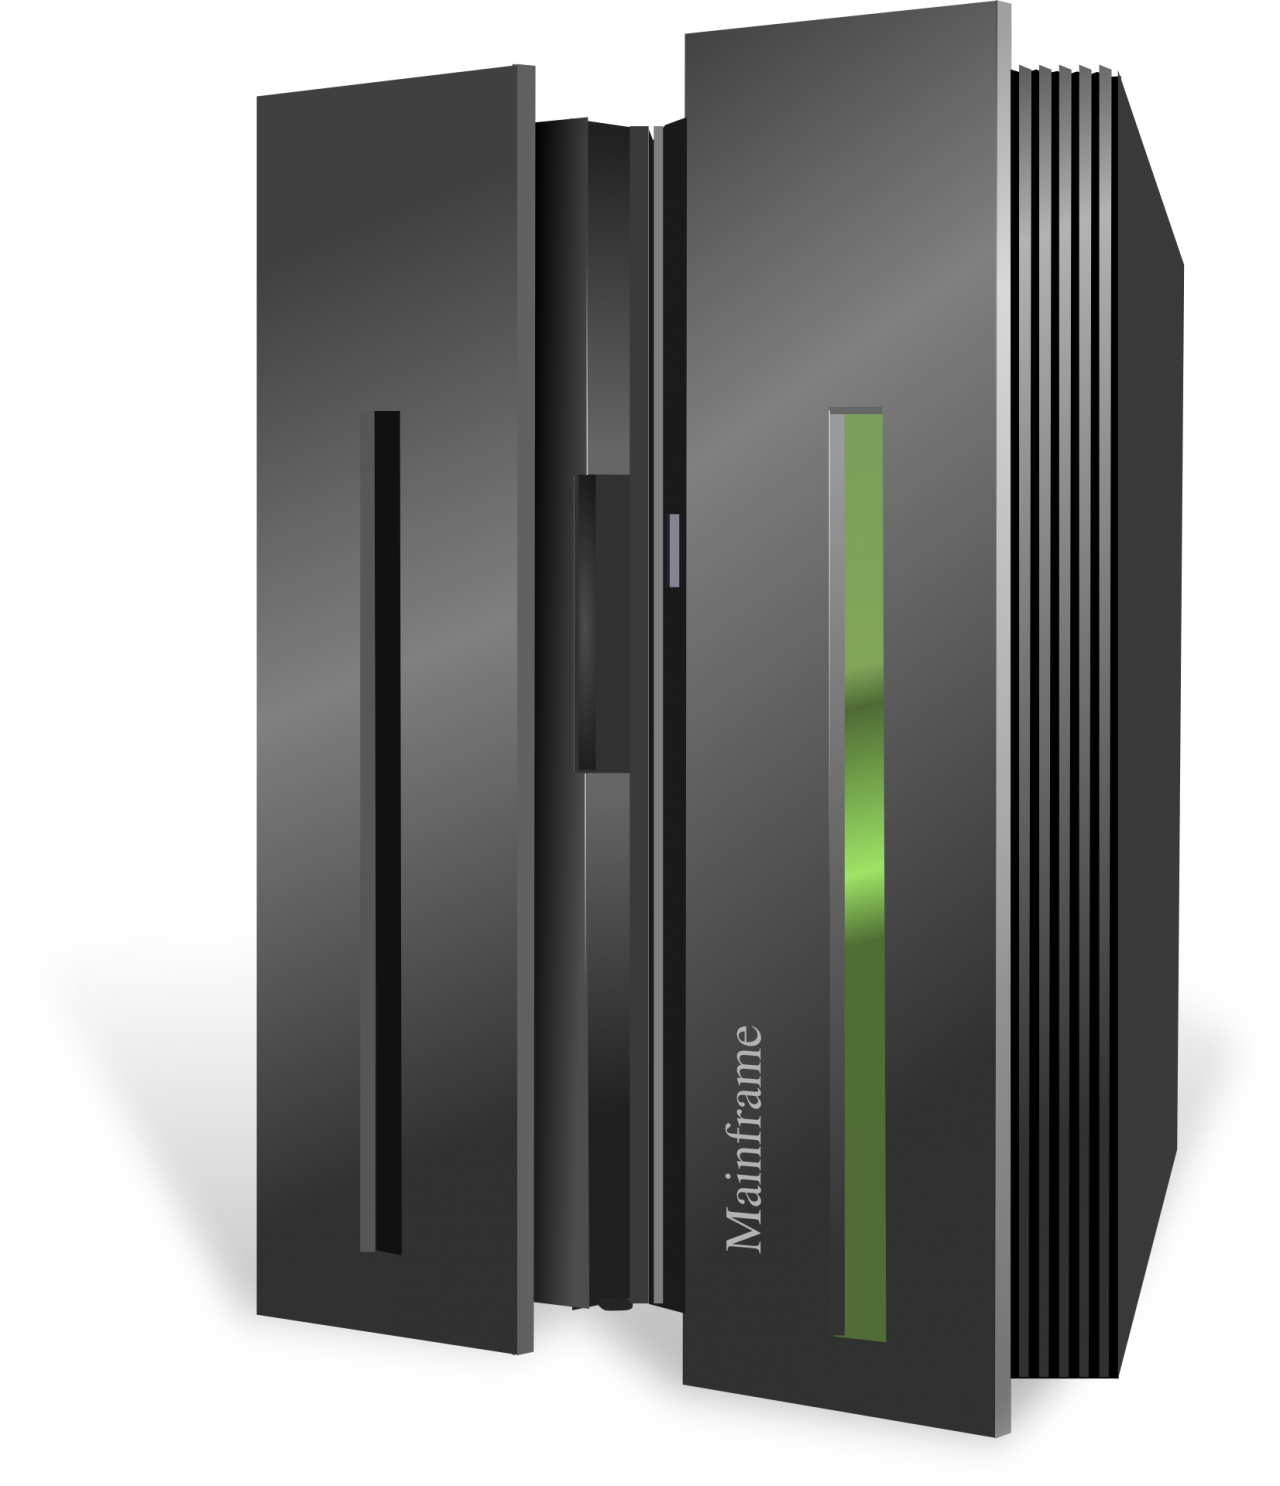 Computer Database Server Hardware Mainframe Servers PNG Image